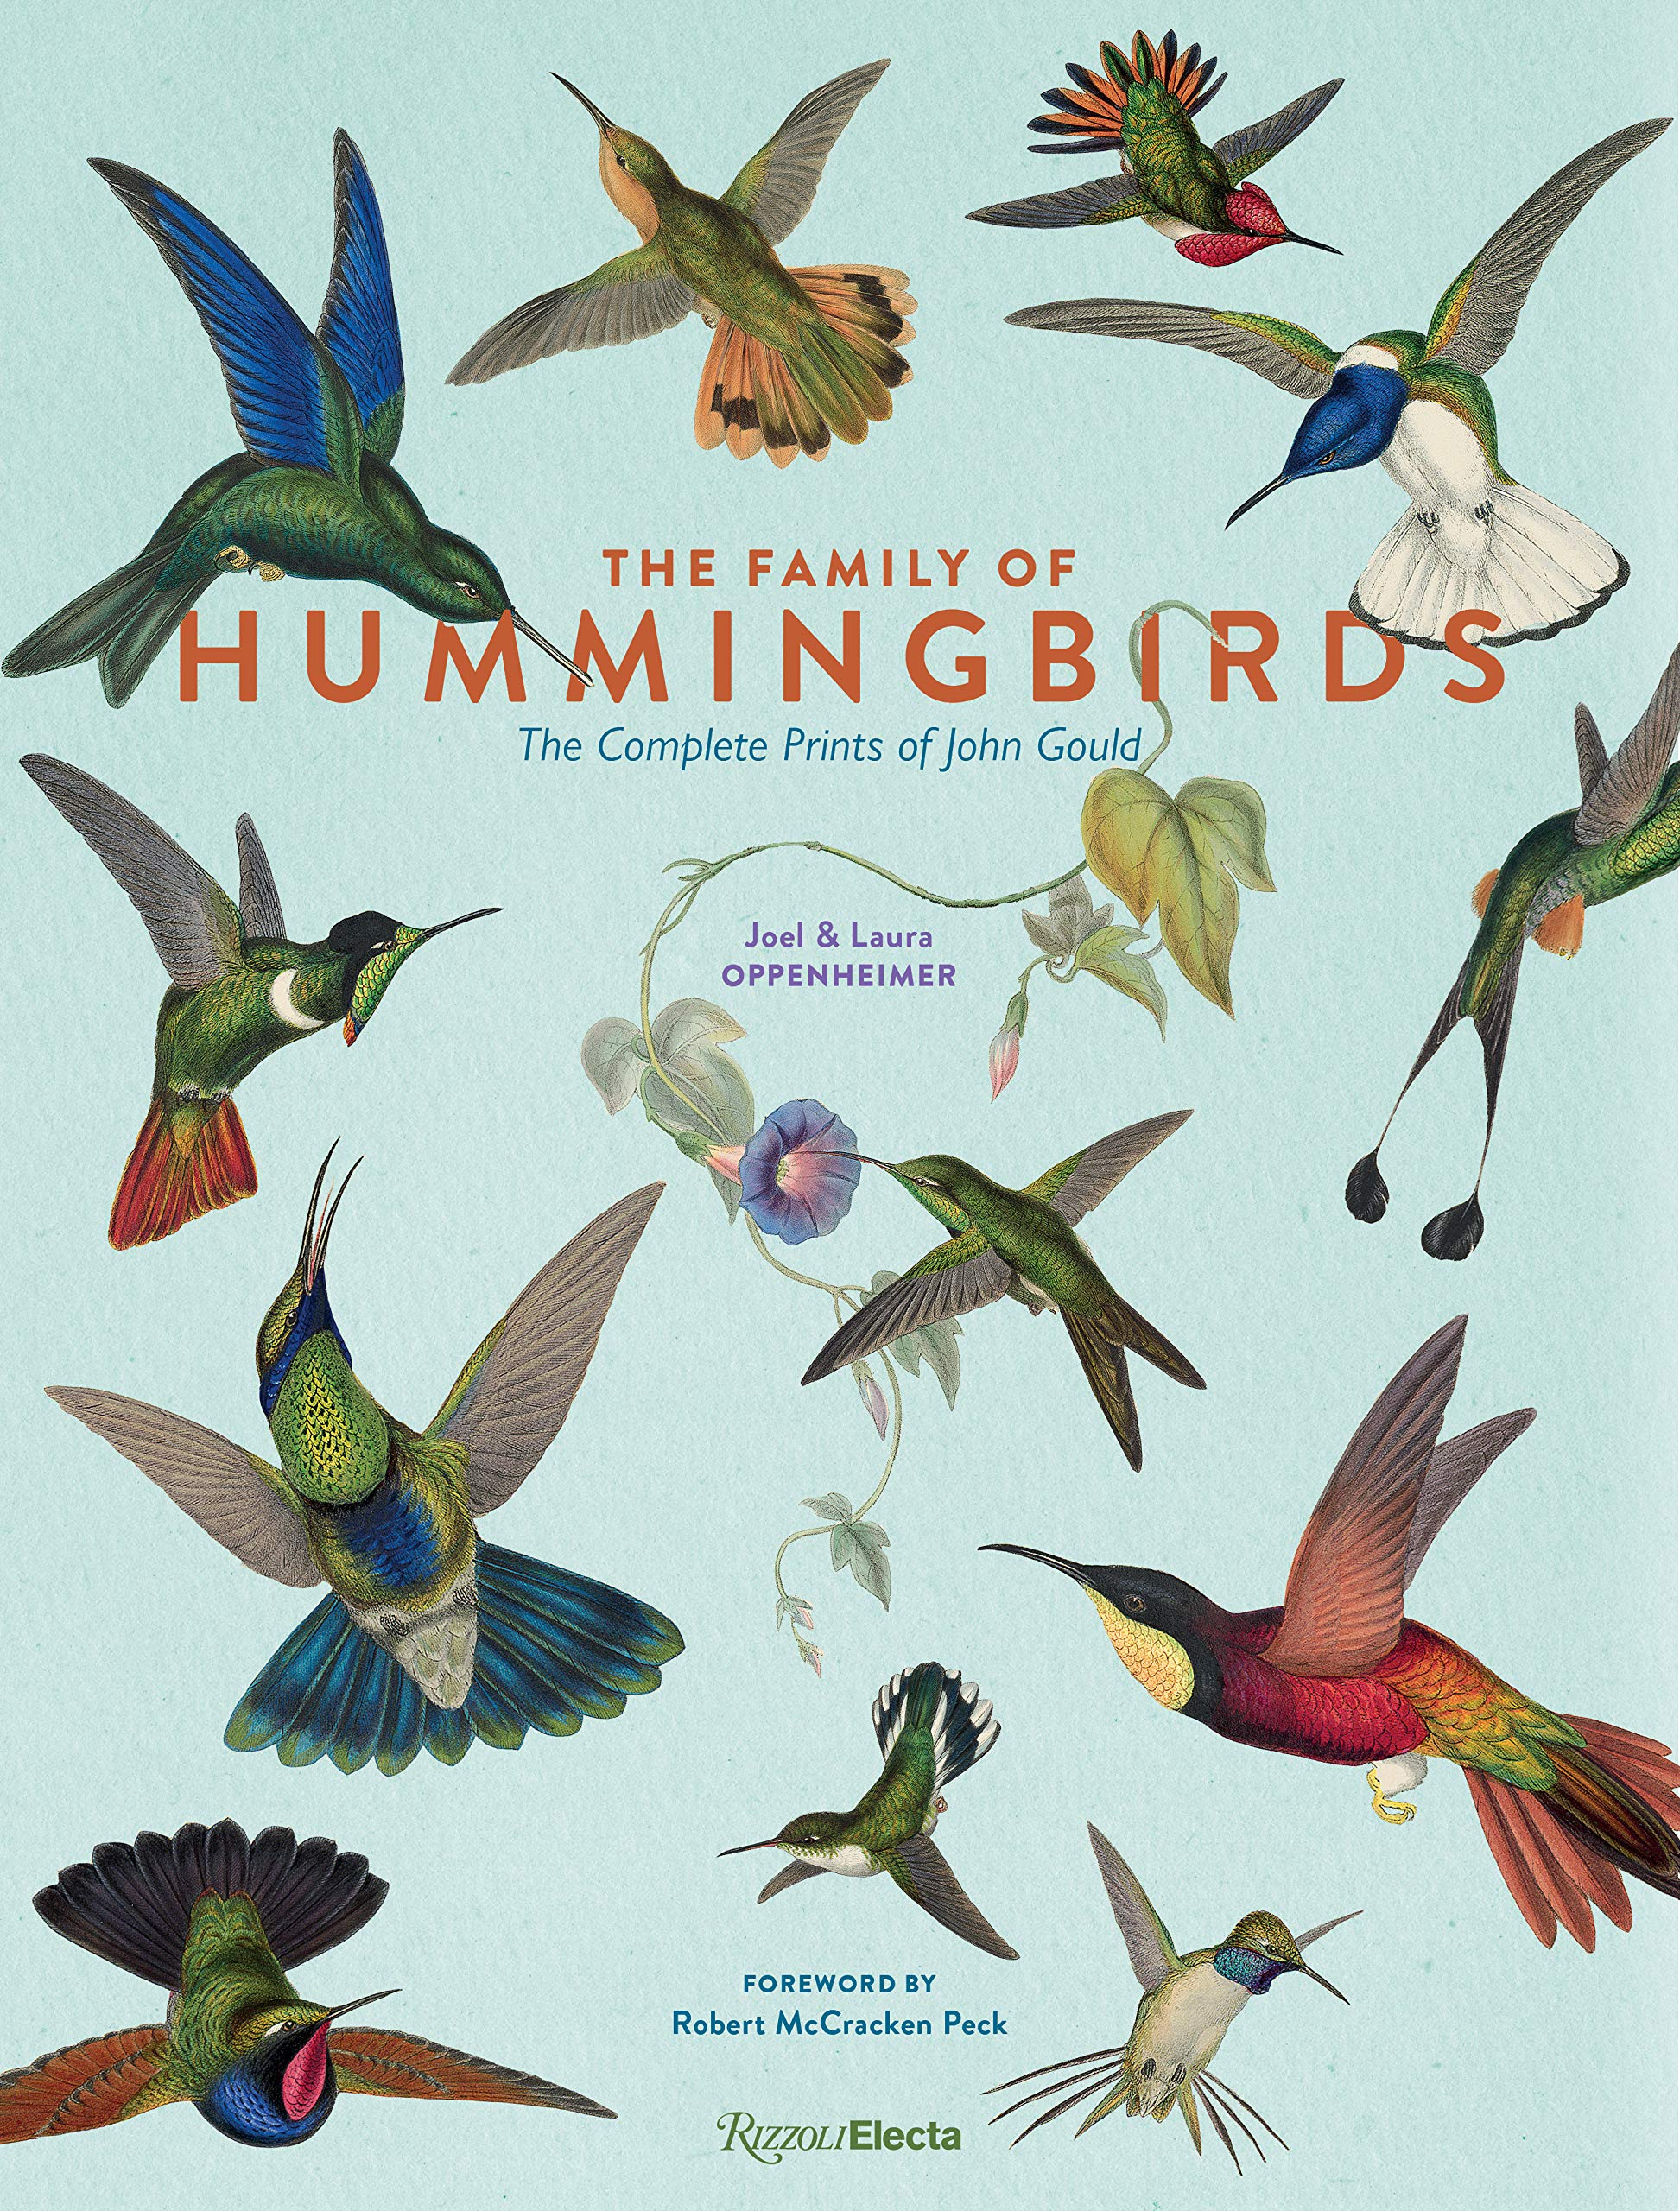 The Family of Hummingbirds: The Complete Prints of John Gould